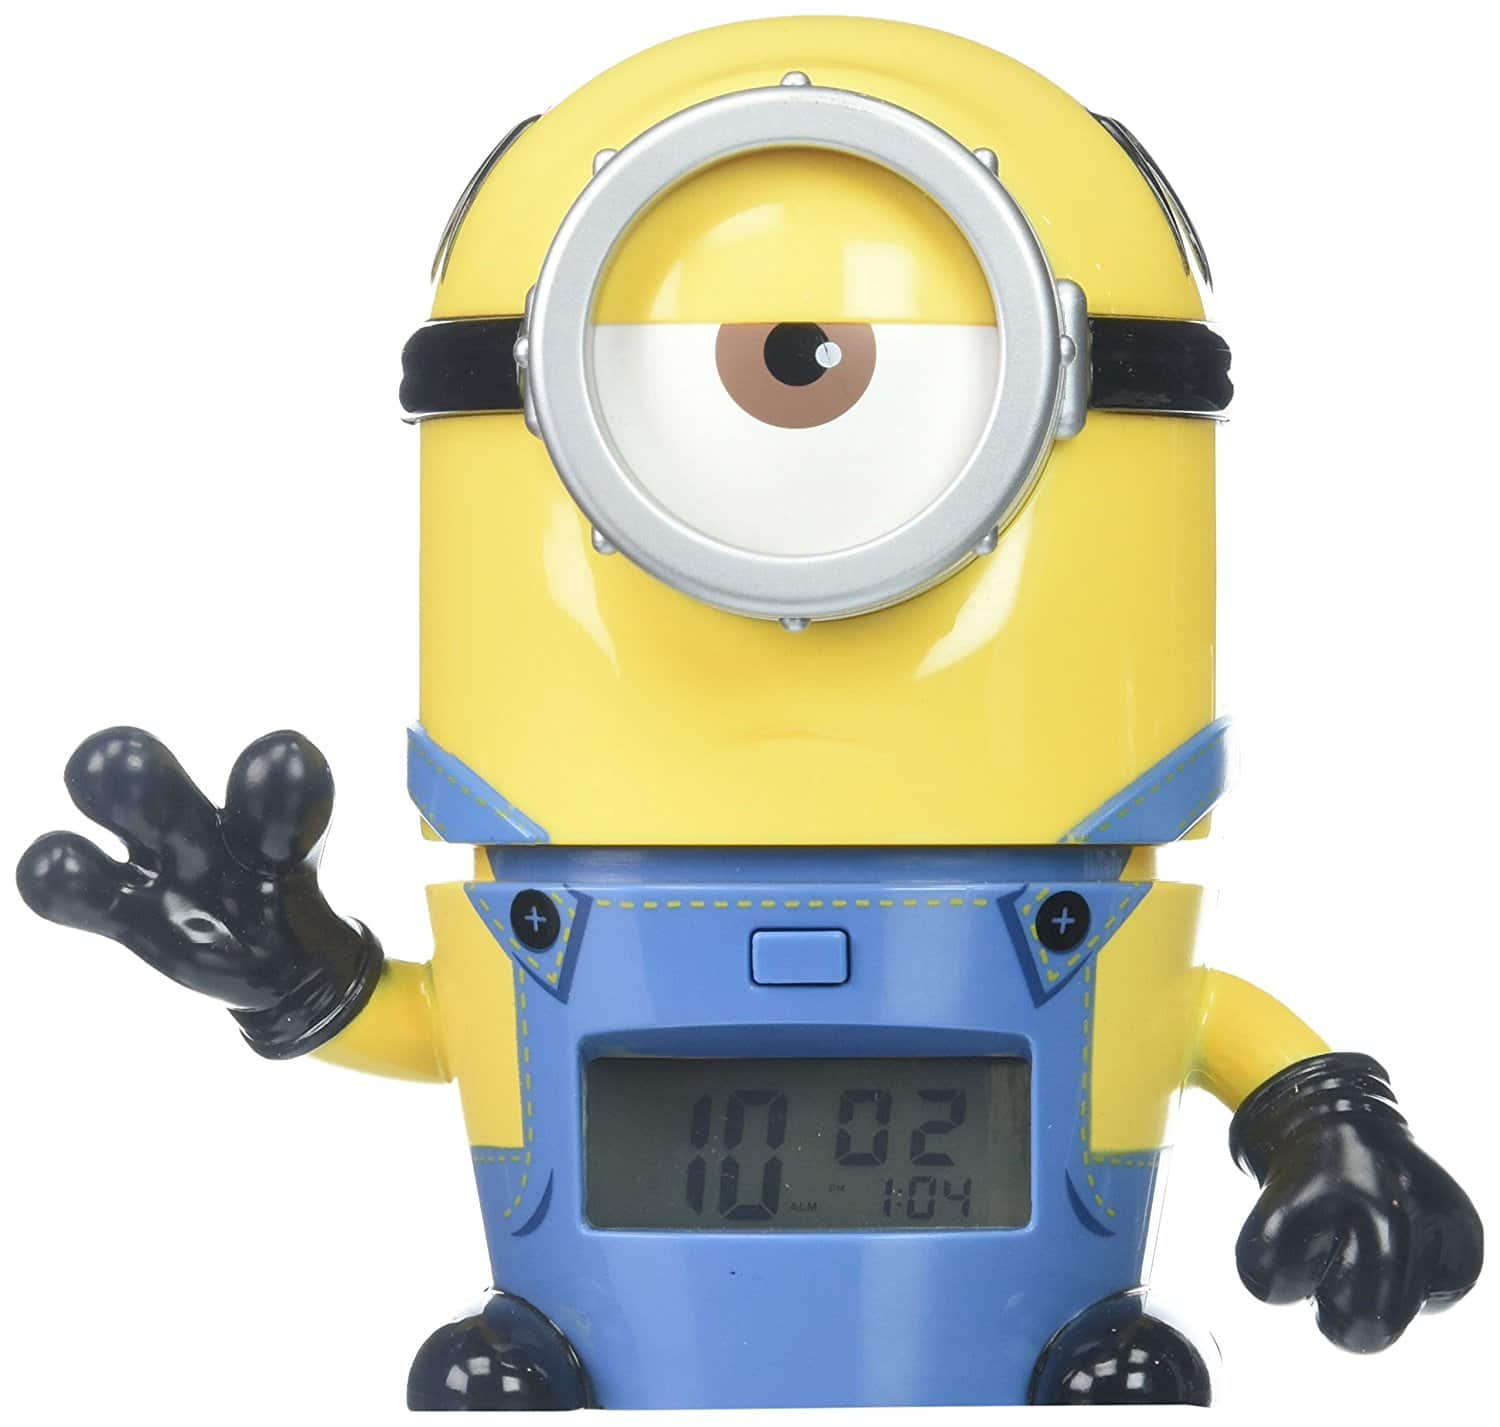 BulbBotz Despicable Me 3 2021234 Mel Minions Kids Night Light Alarm Clock with Characterized Sound   $12.38